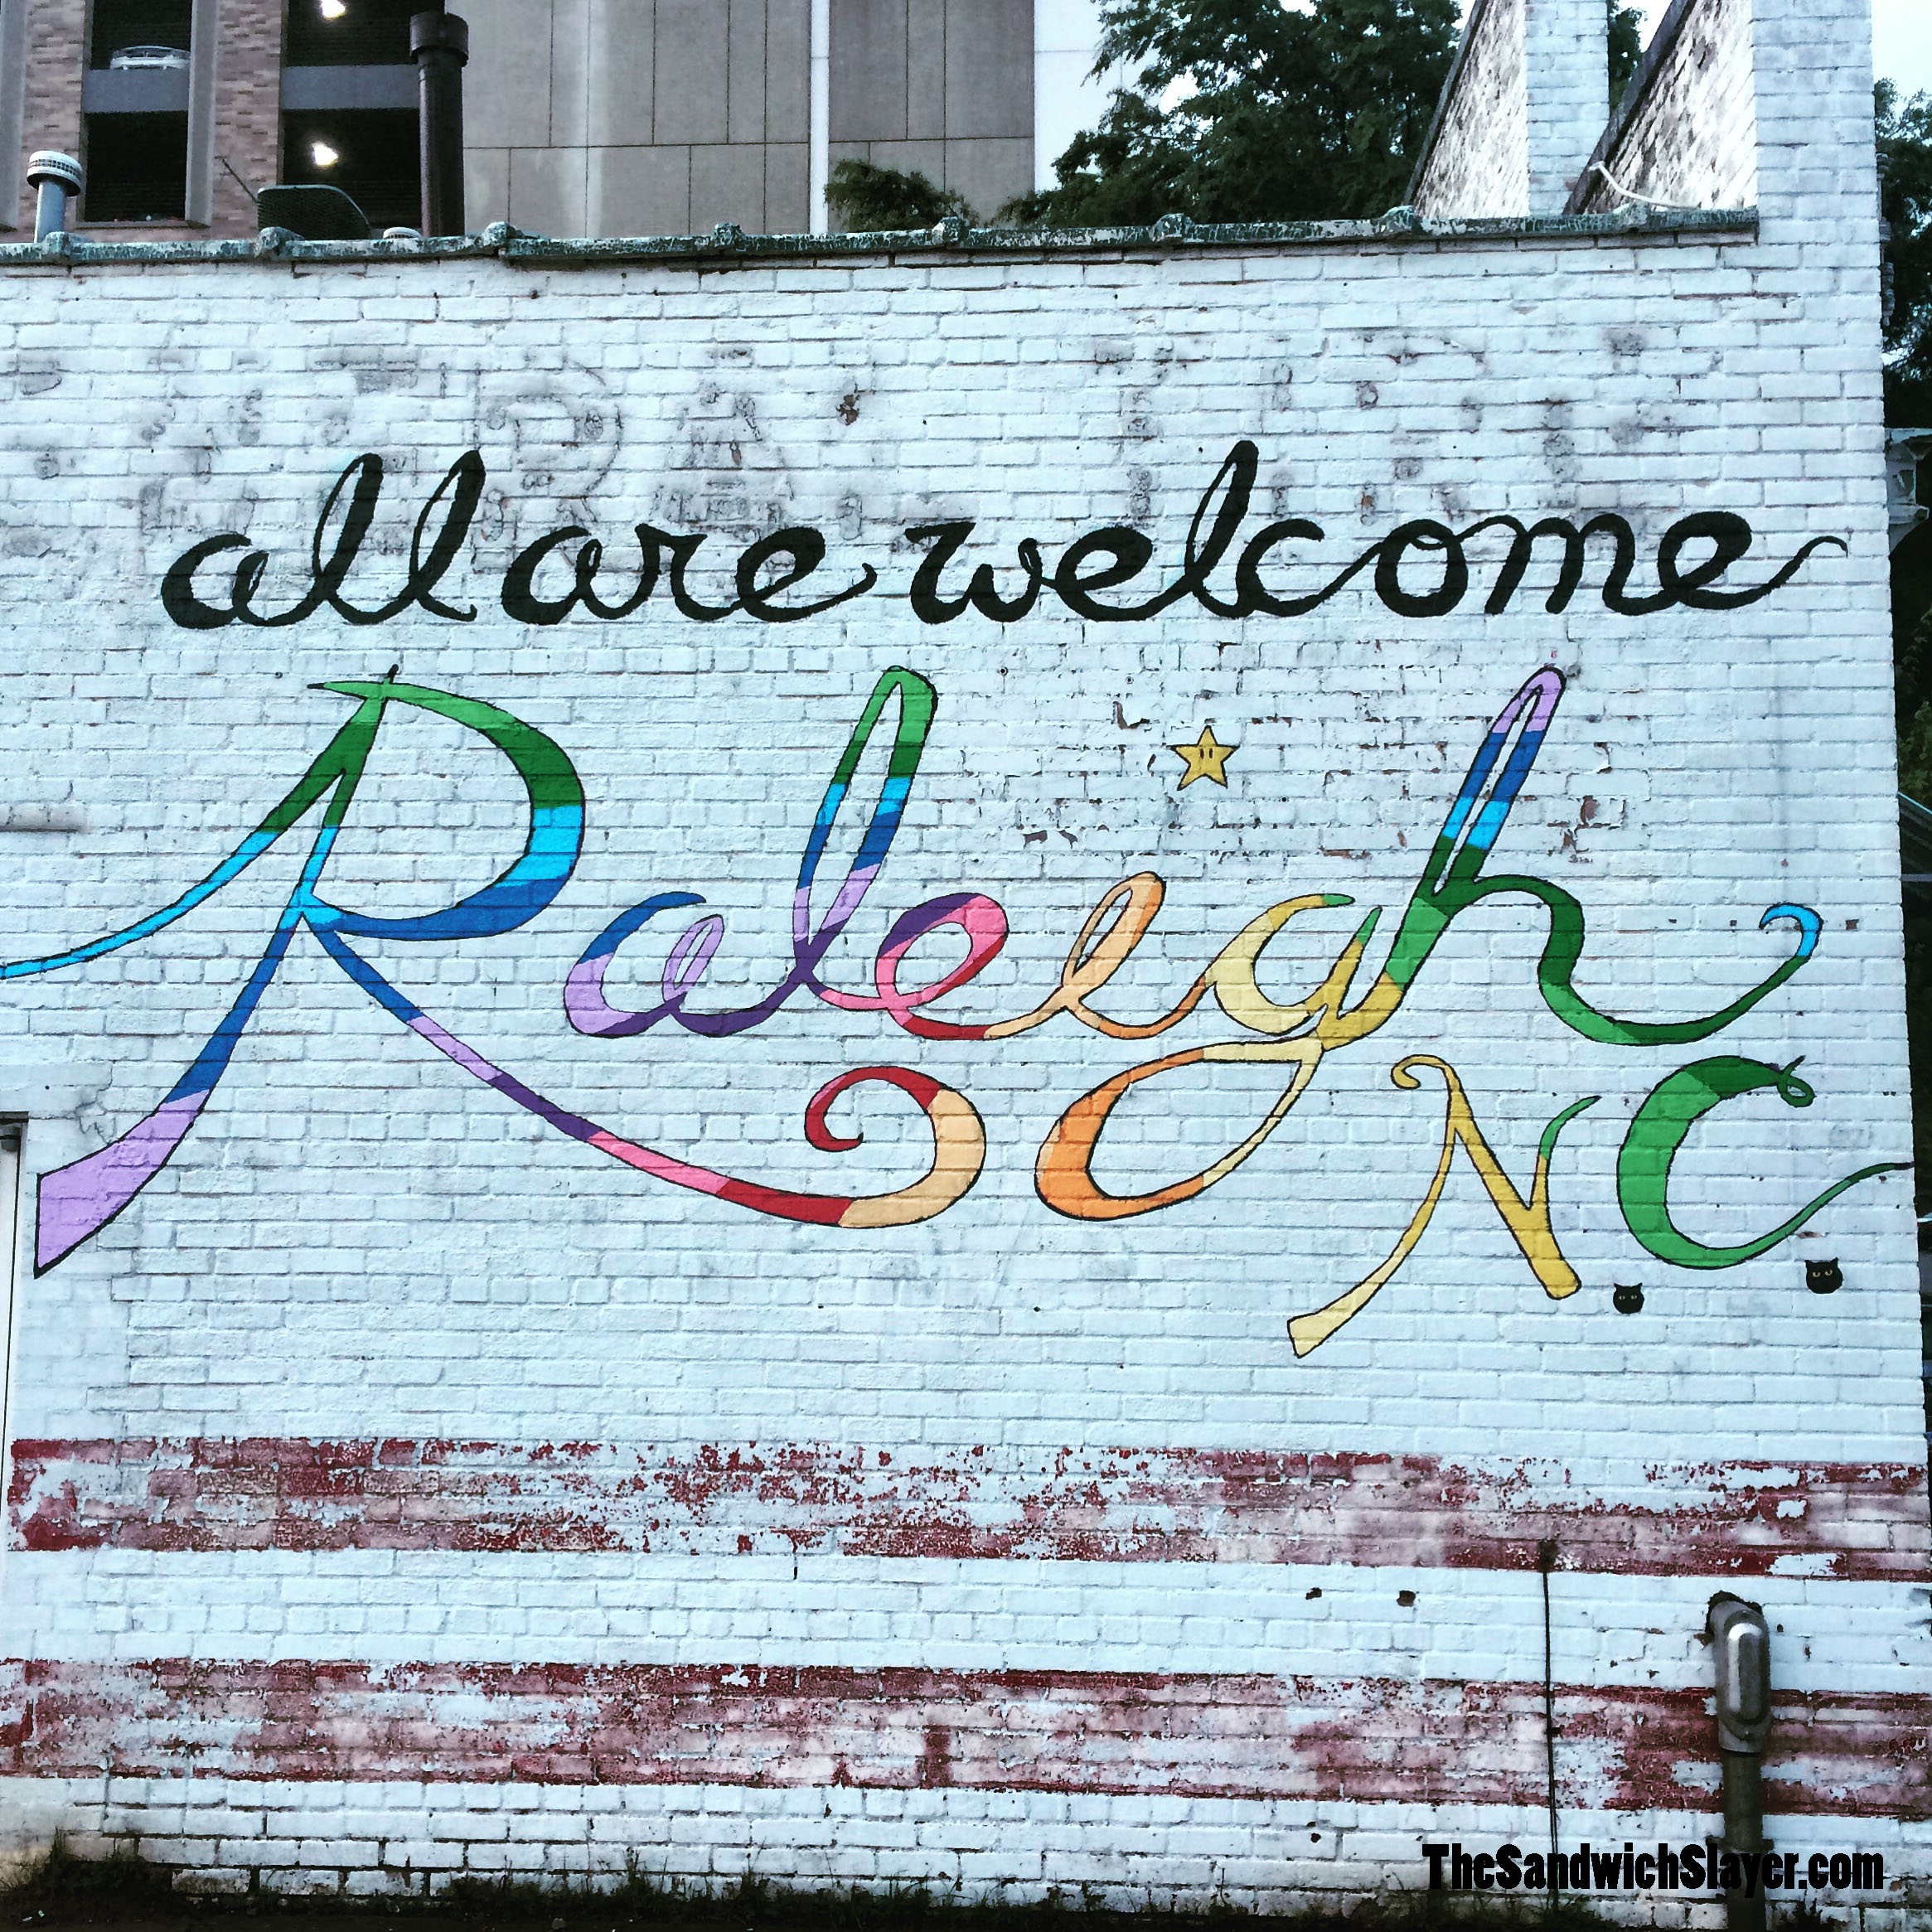 Vy Goes to Raleigh, North Carolina - The Sandwich Slayer